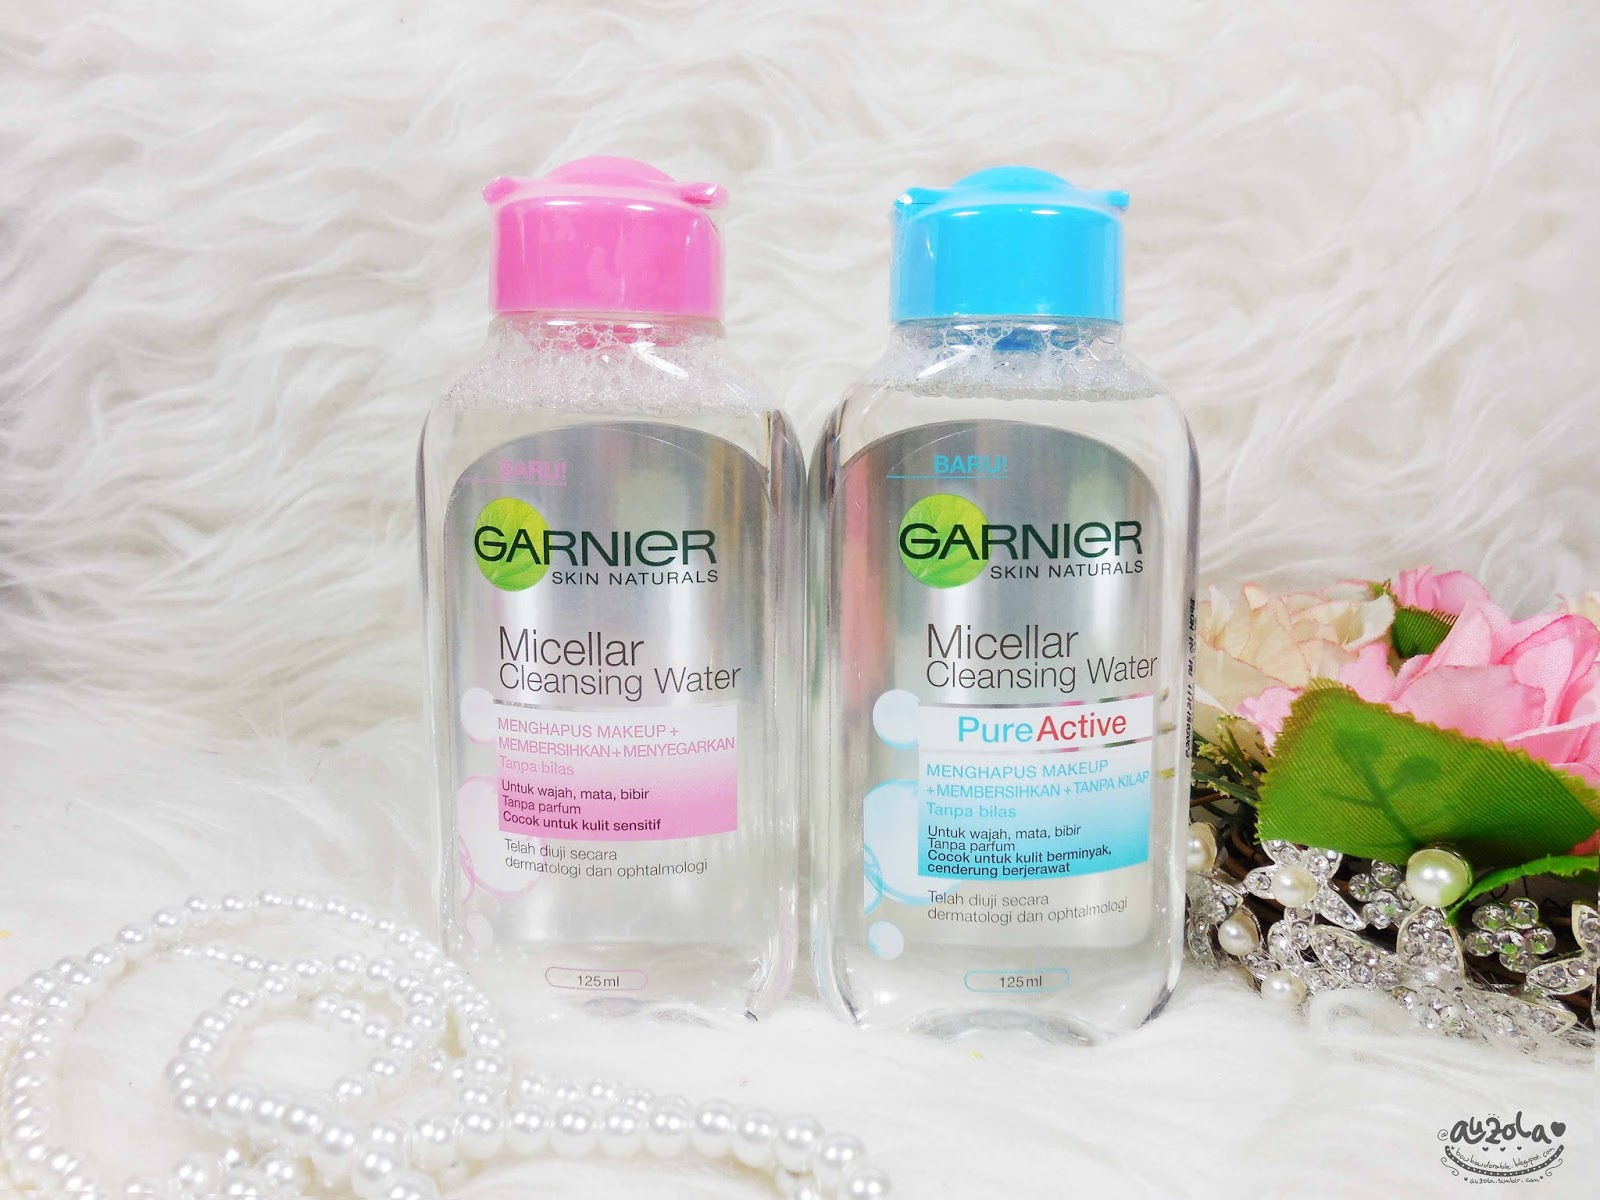 Rainbowdorable By Auzola Indonesian Beauty Blogger Review Garnier Micellar Cleansing Water 125ml Just Normal Clear With A Hint Of Pink Or Blue For Each Variant Its The Small Version So Easy To Bring Anywhere As It Doesnt